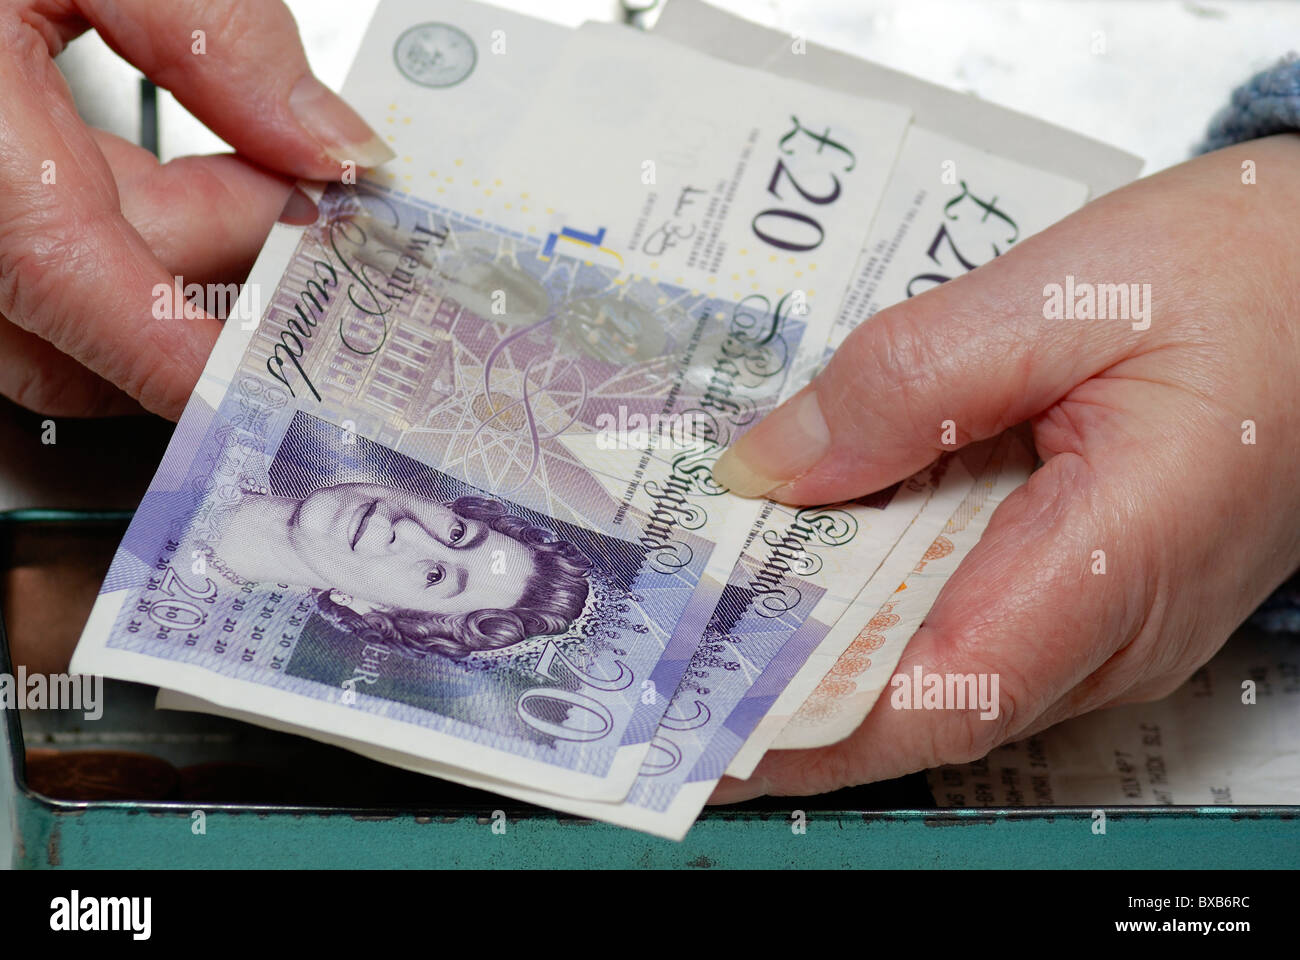 pensioner holding 20 pound notes English currency uk - Stock Image